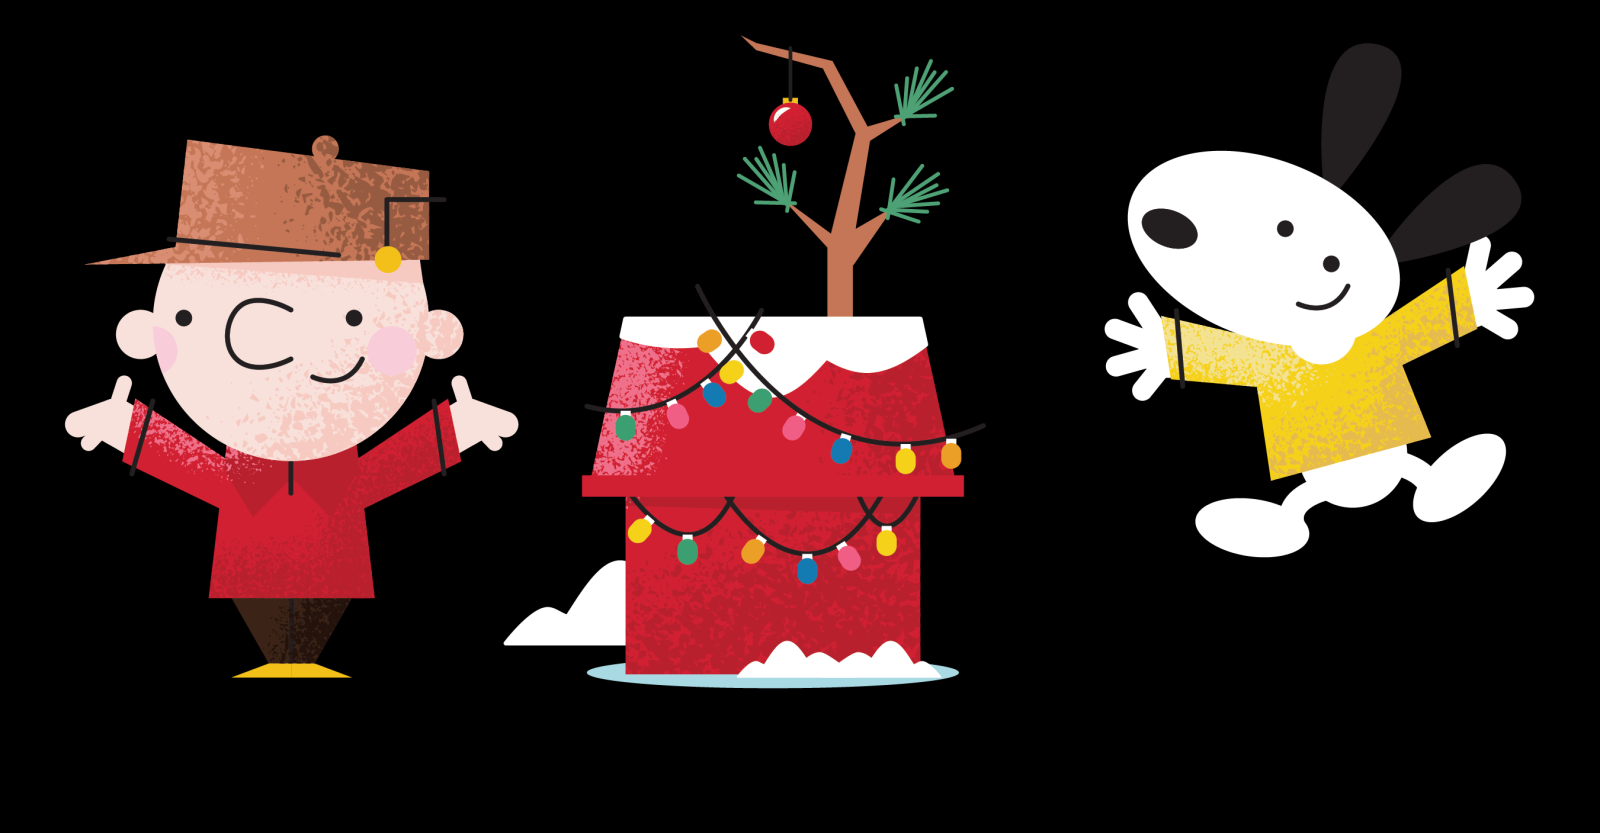 02_Charlie_Snoopy_Color_CHARLIE.png